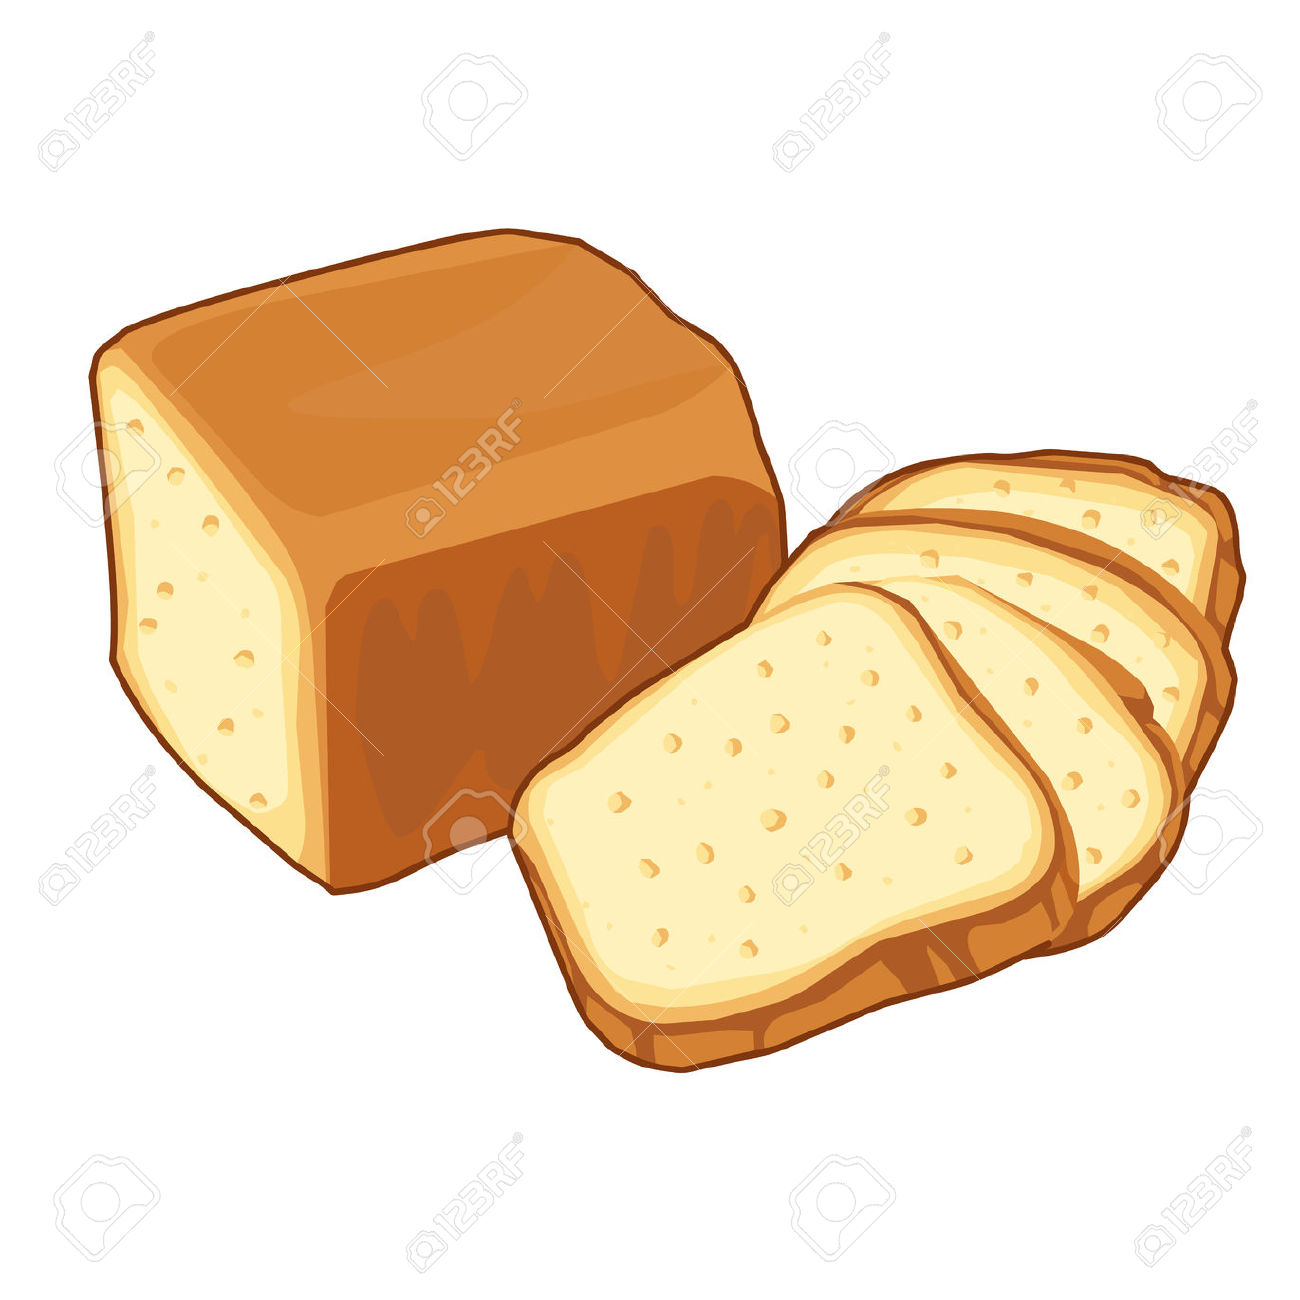 Whole wheat bread clipart png free stock Whole Wheat Bread Clipart (47 ) - Free Clipart png free stock